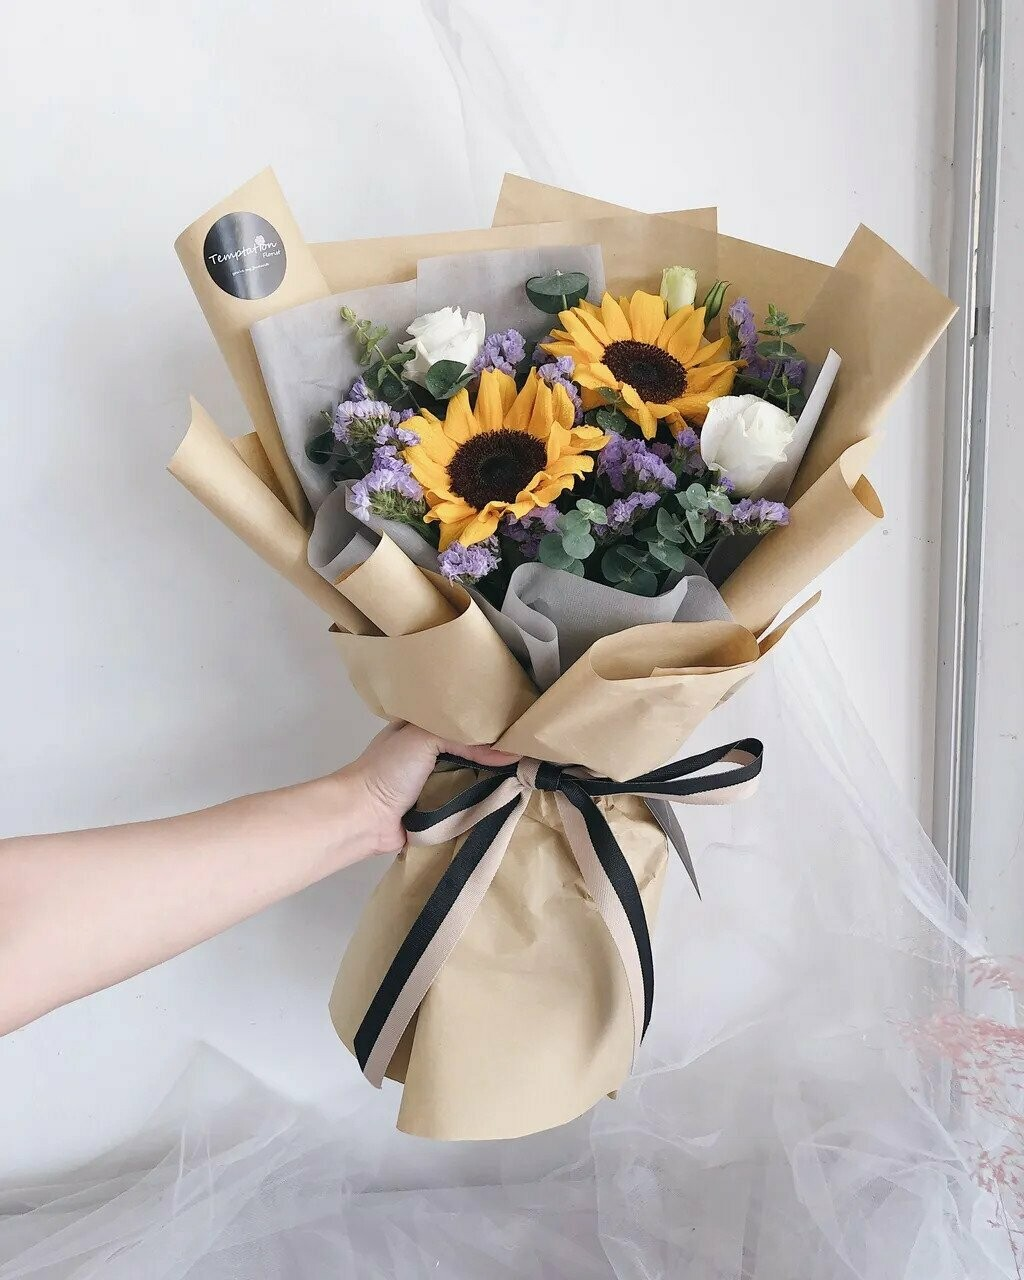 Graduated Story (By: Temptation Florist from Seremban)